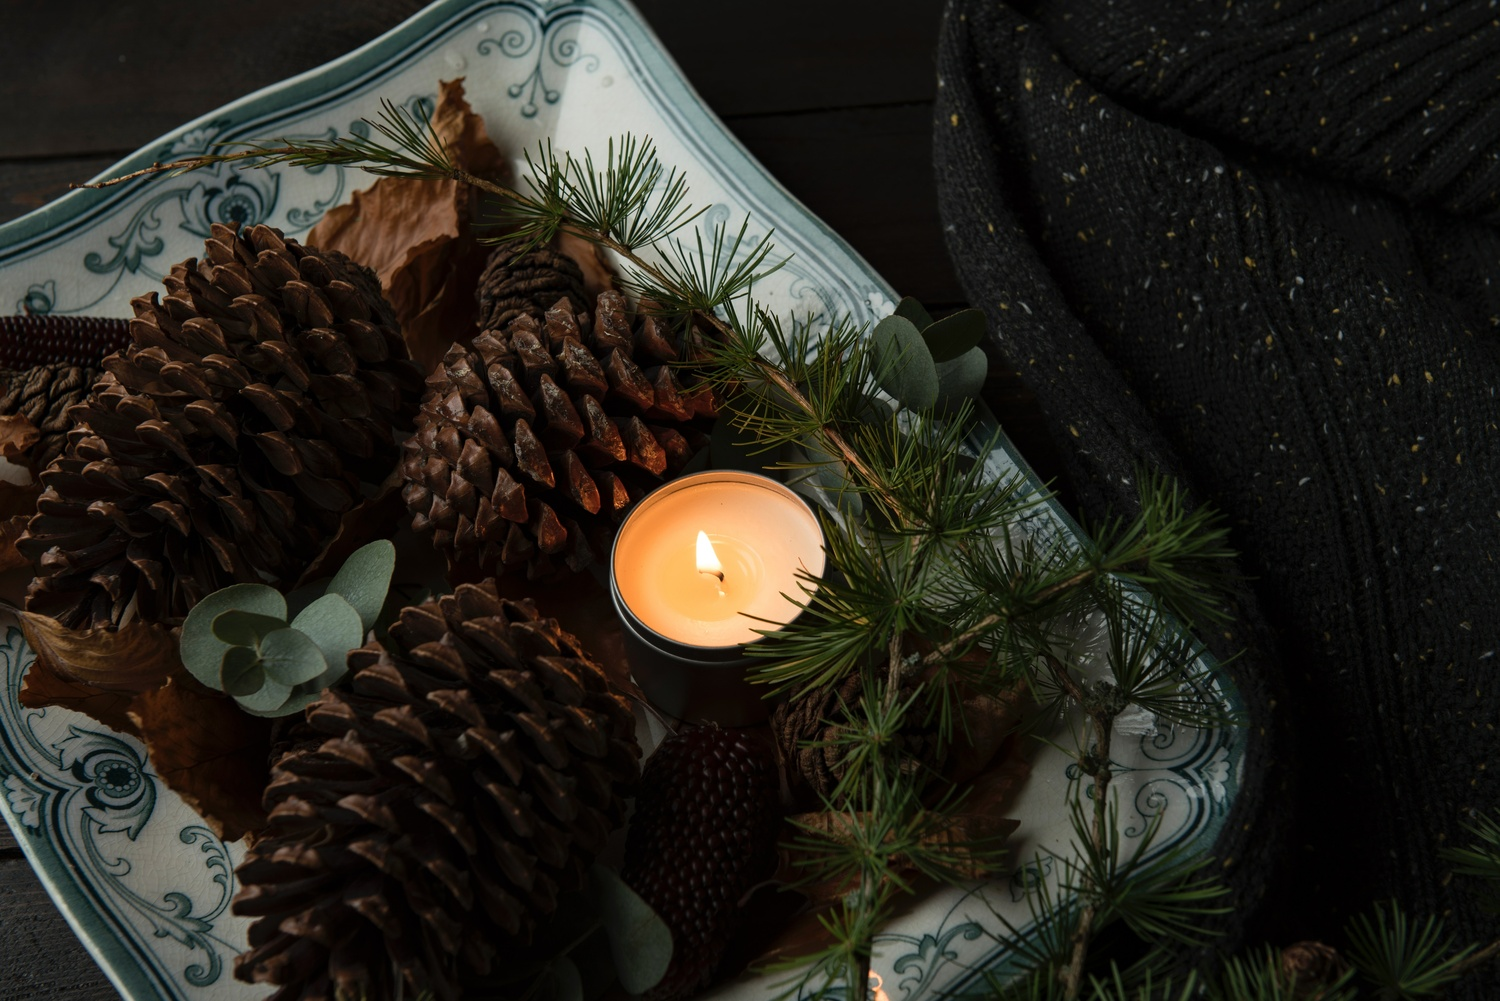 lighted candle on plate beside the pinecones - Möbel Preiss